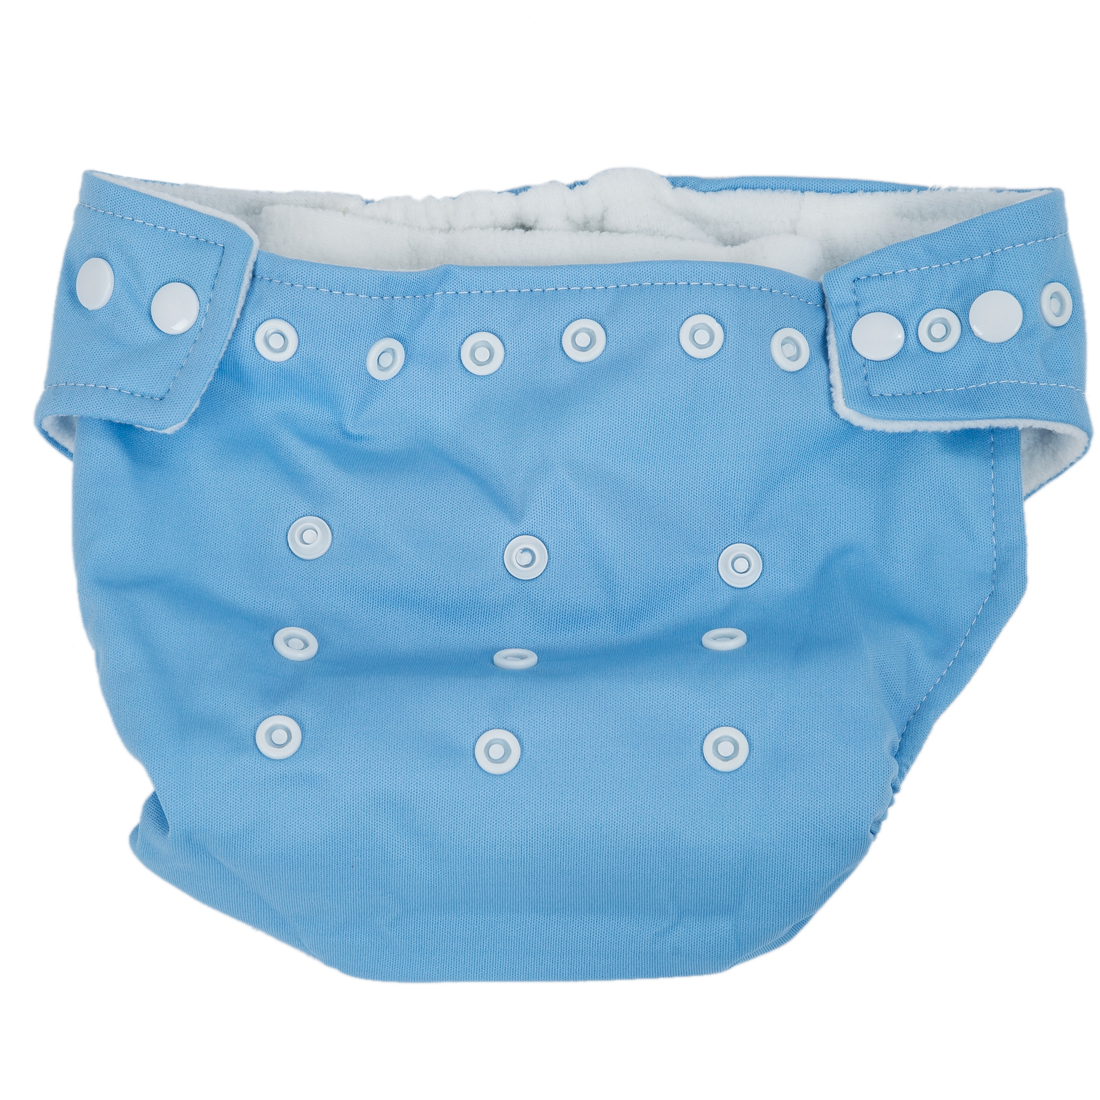 BABY CITY Baby washable diapers TE1 Evoluable without insert 7 Colors